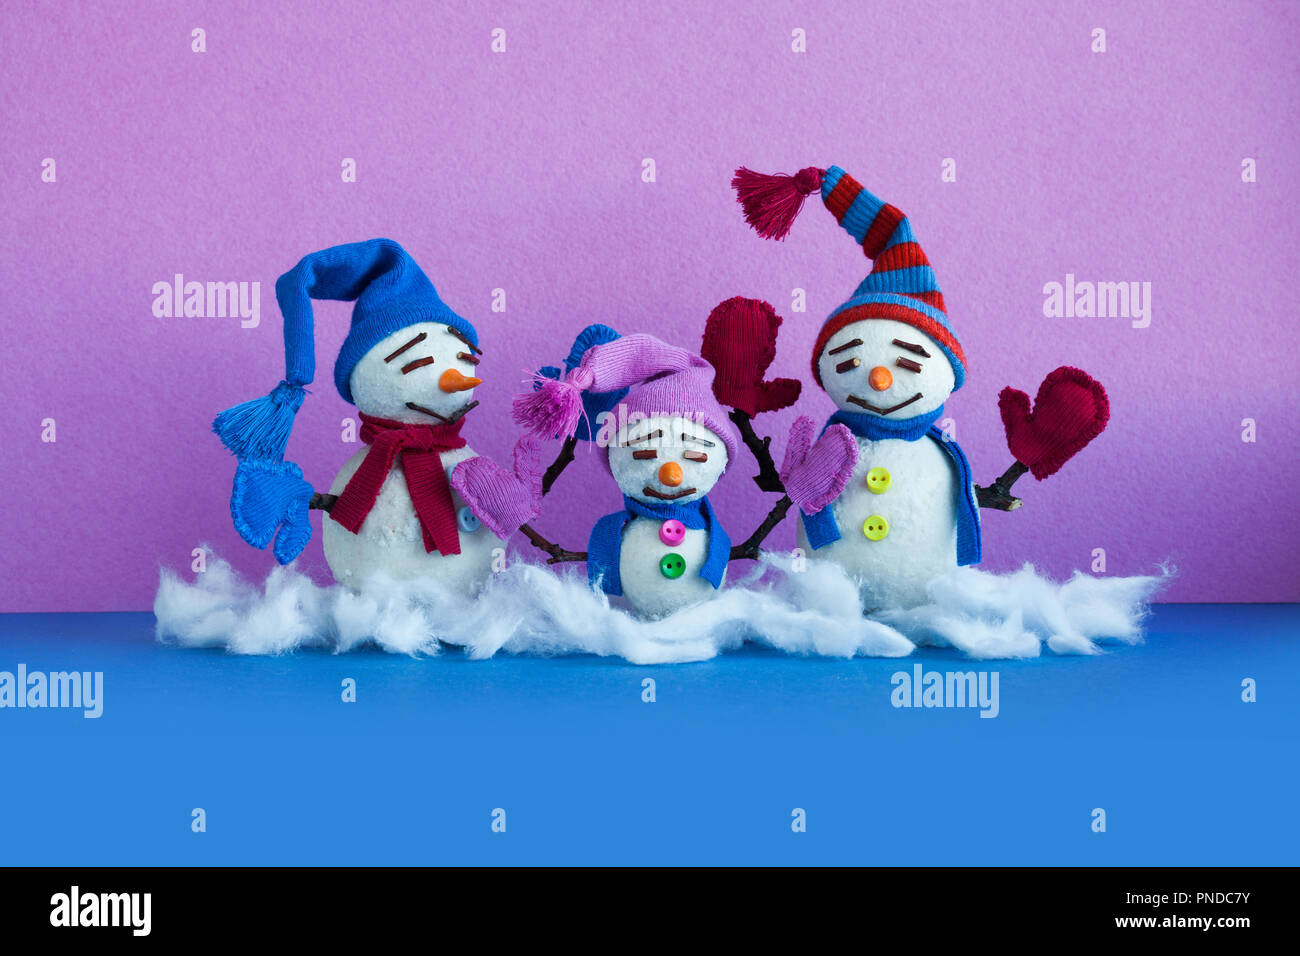 Snowmen family on blue purple background. Xmas comical snowman characters with mittens scarves and funny hats. Copy space - Stock Image